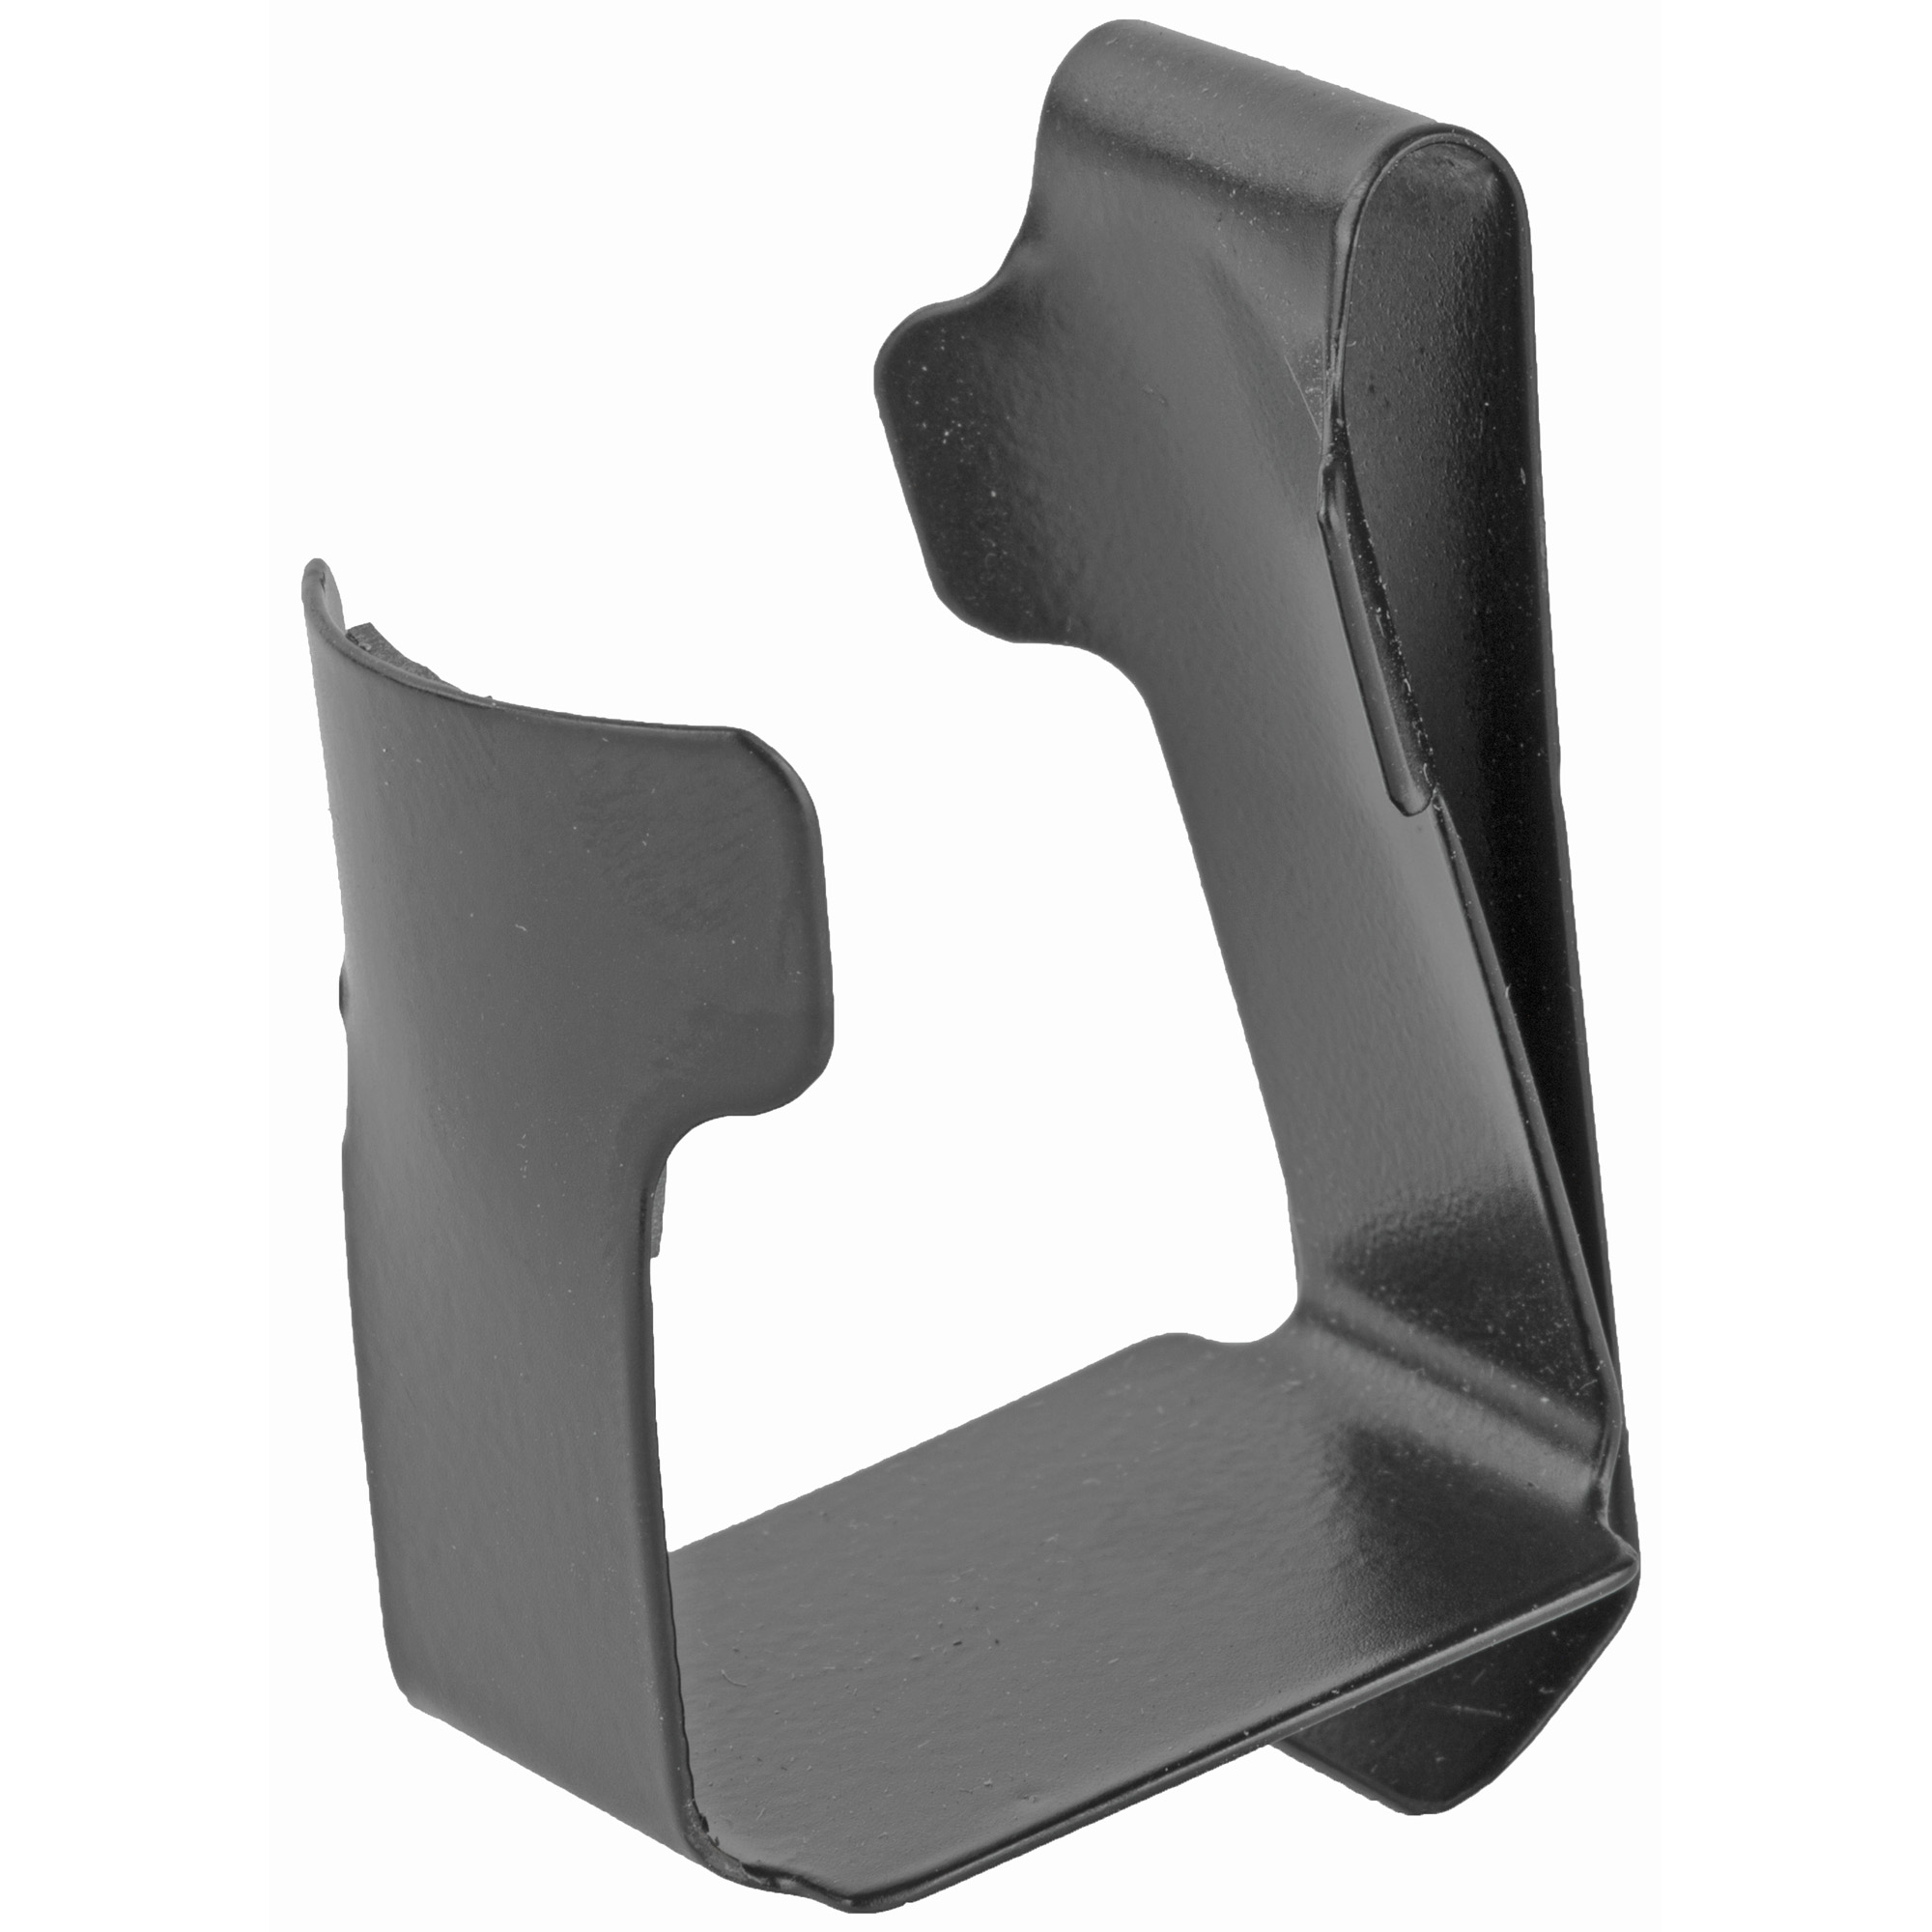 "The CD-2 metal clip-on Speedloader Holder is an epoxy coated strong steel clip lined with a vinyl pad insert to ensure loader stability. Clips firmly onto any belt up to 2"" (50mm) in width and designed for small frame 5-shot or medium frame 6-shot revolvers."